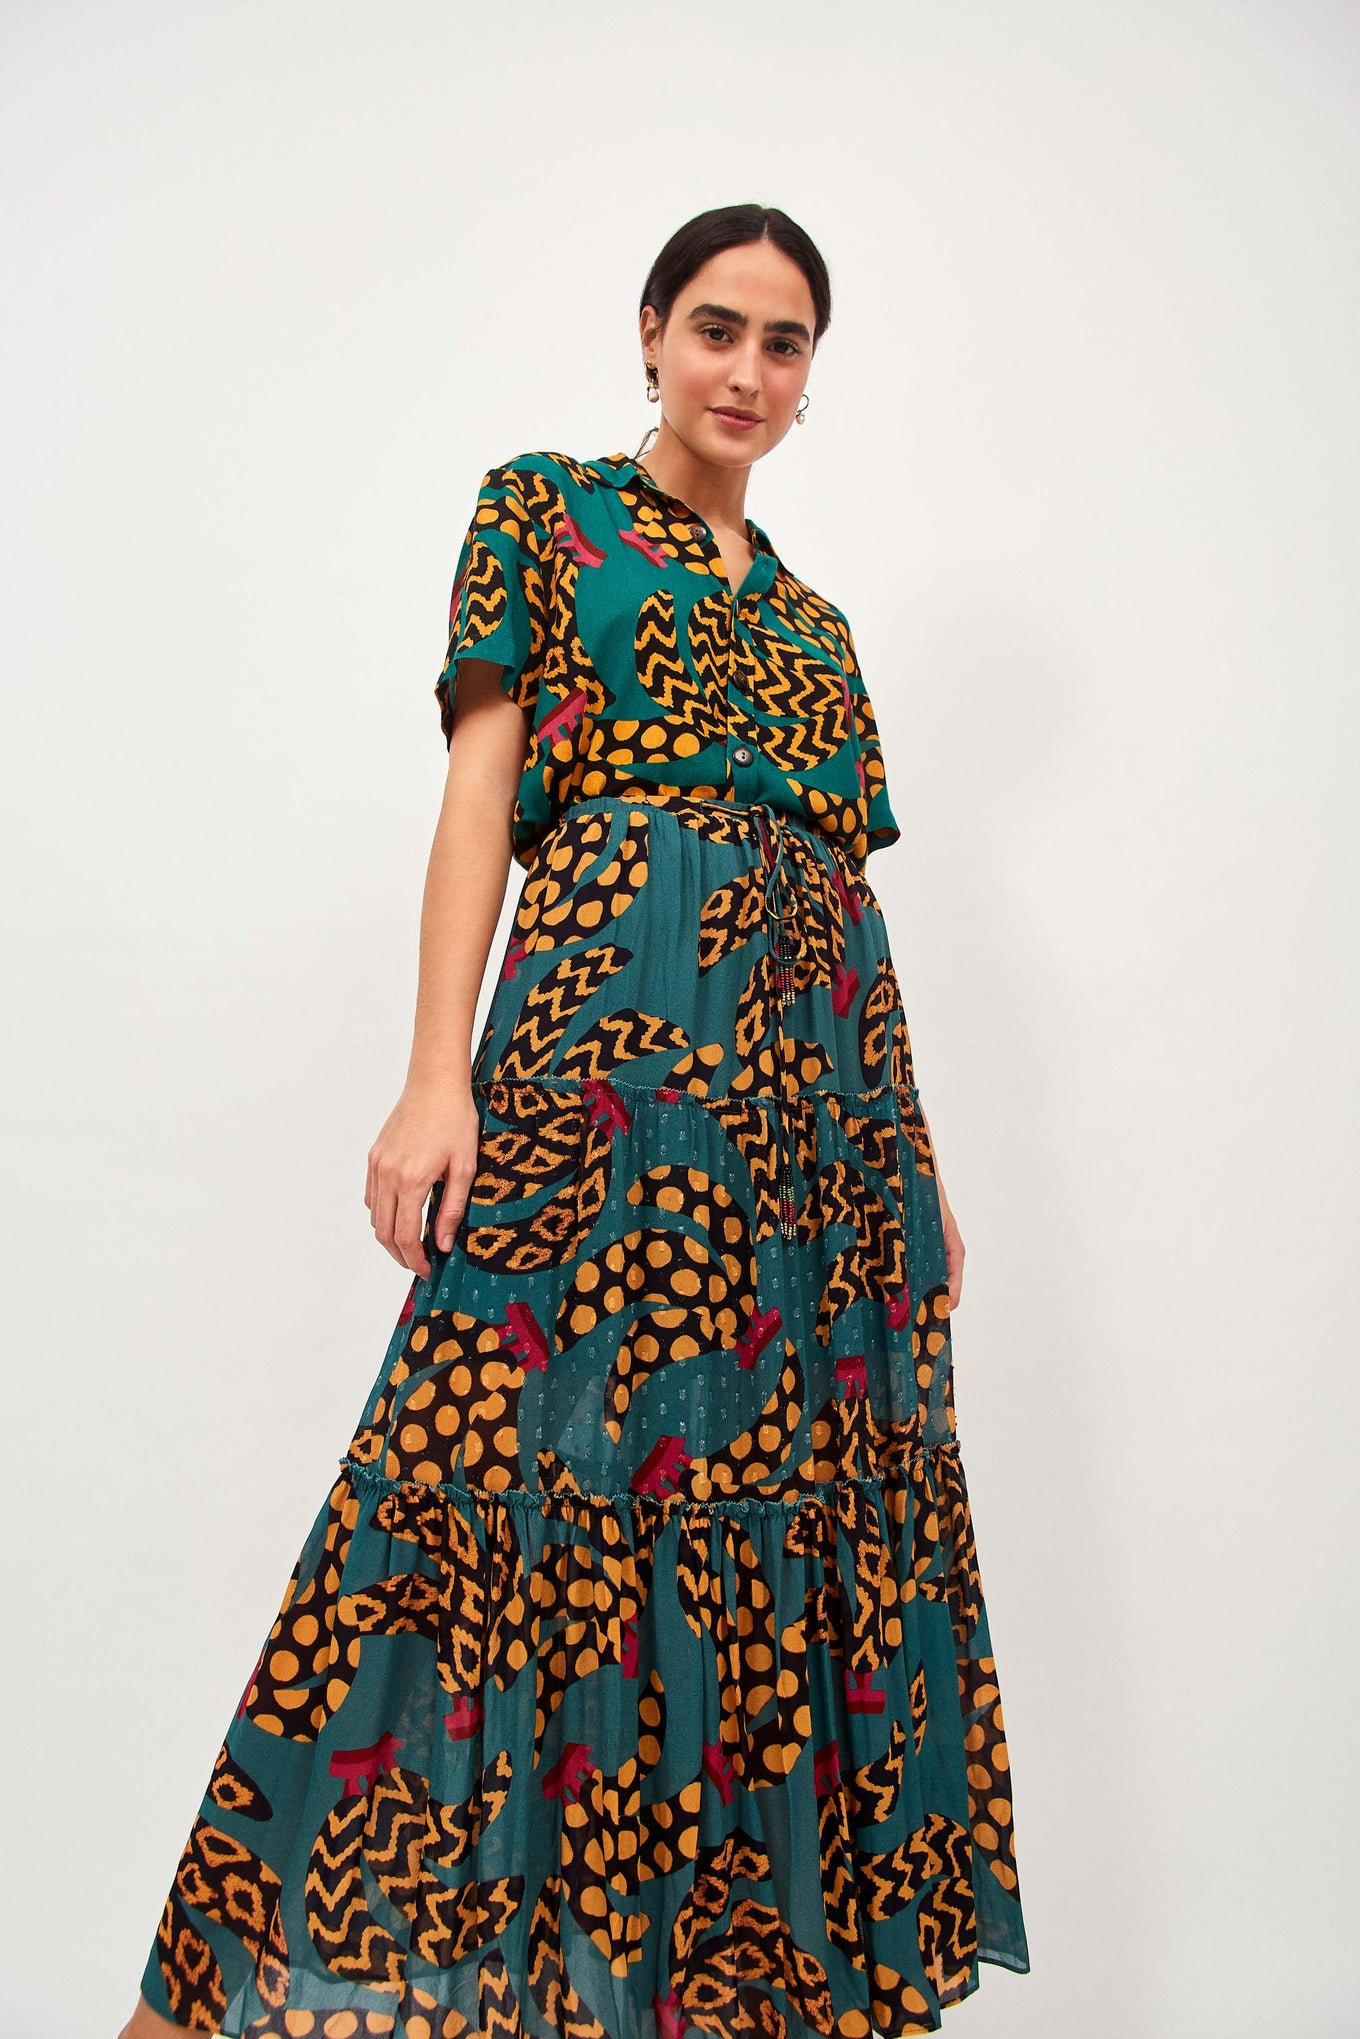 TEAL BANANAS MAXI SKIRT